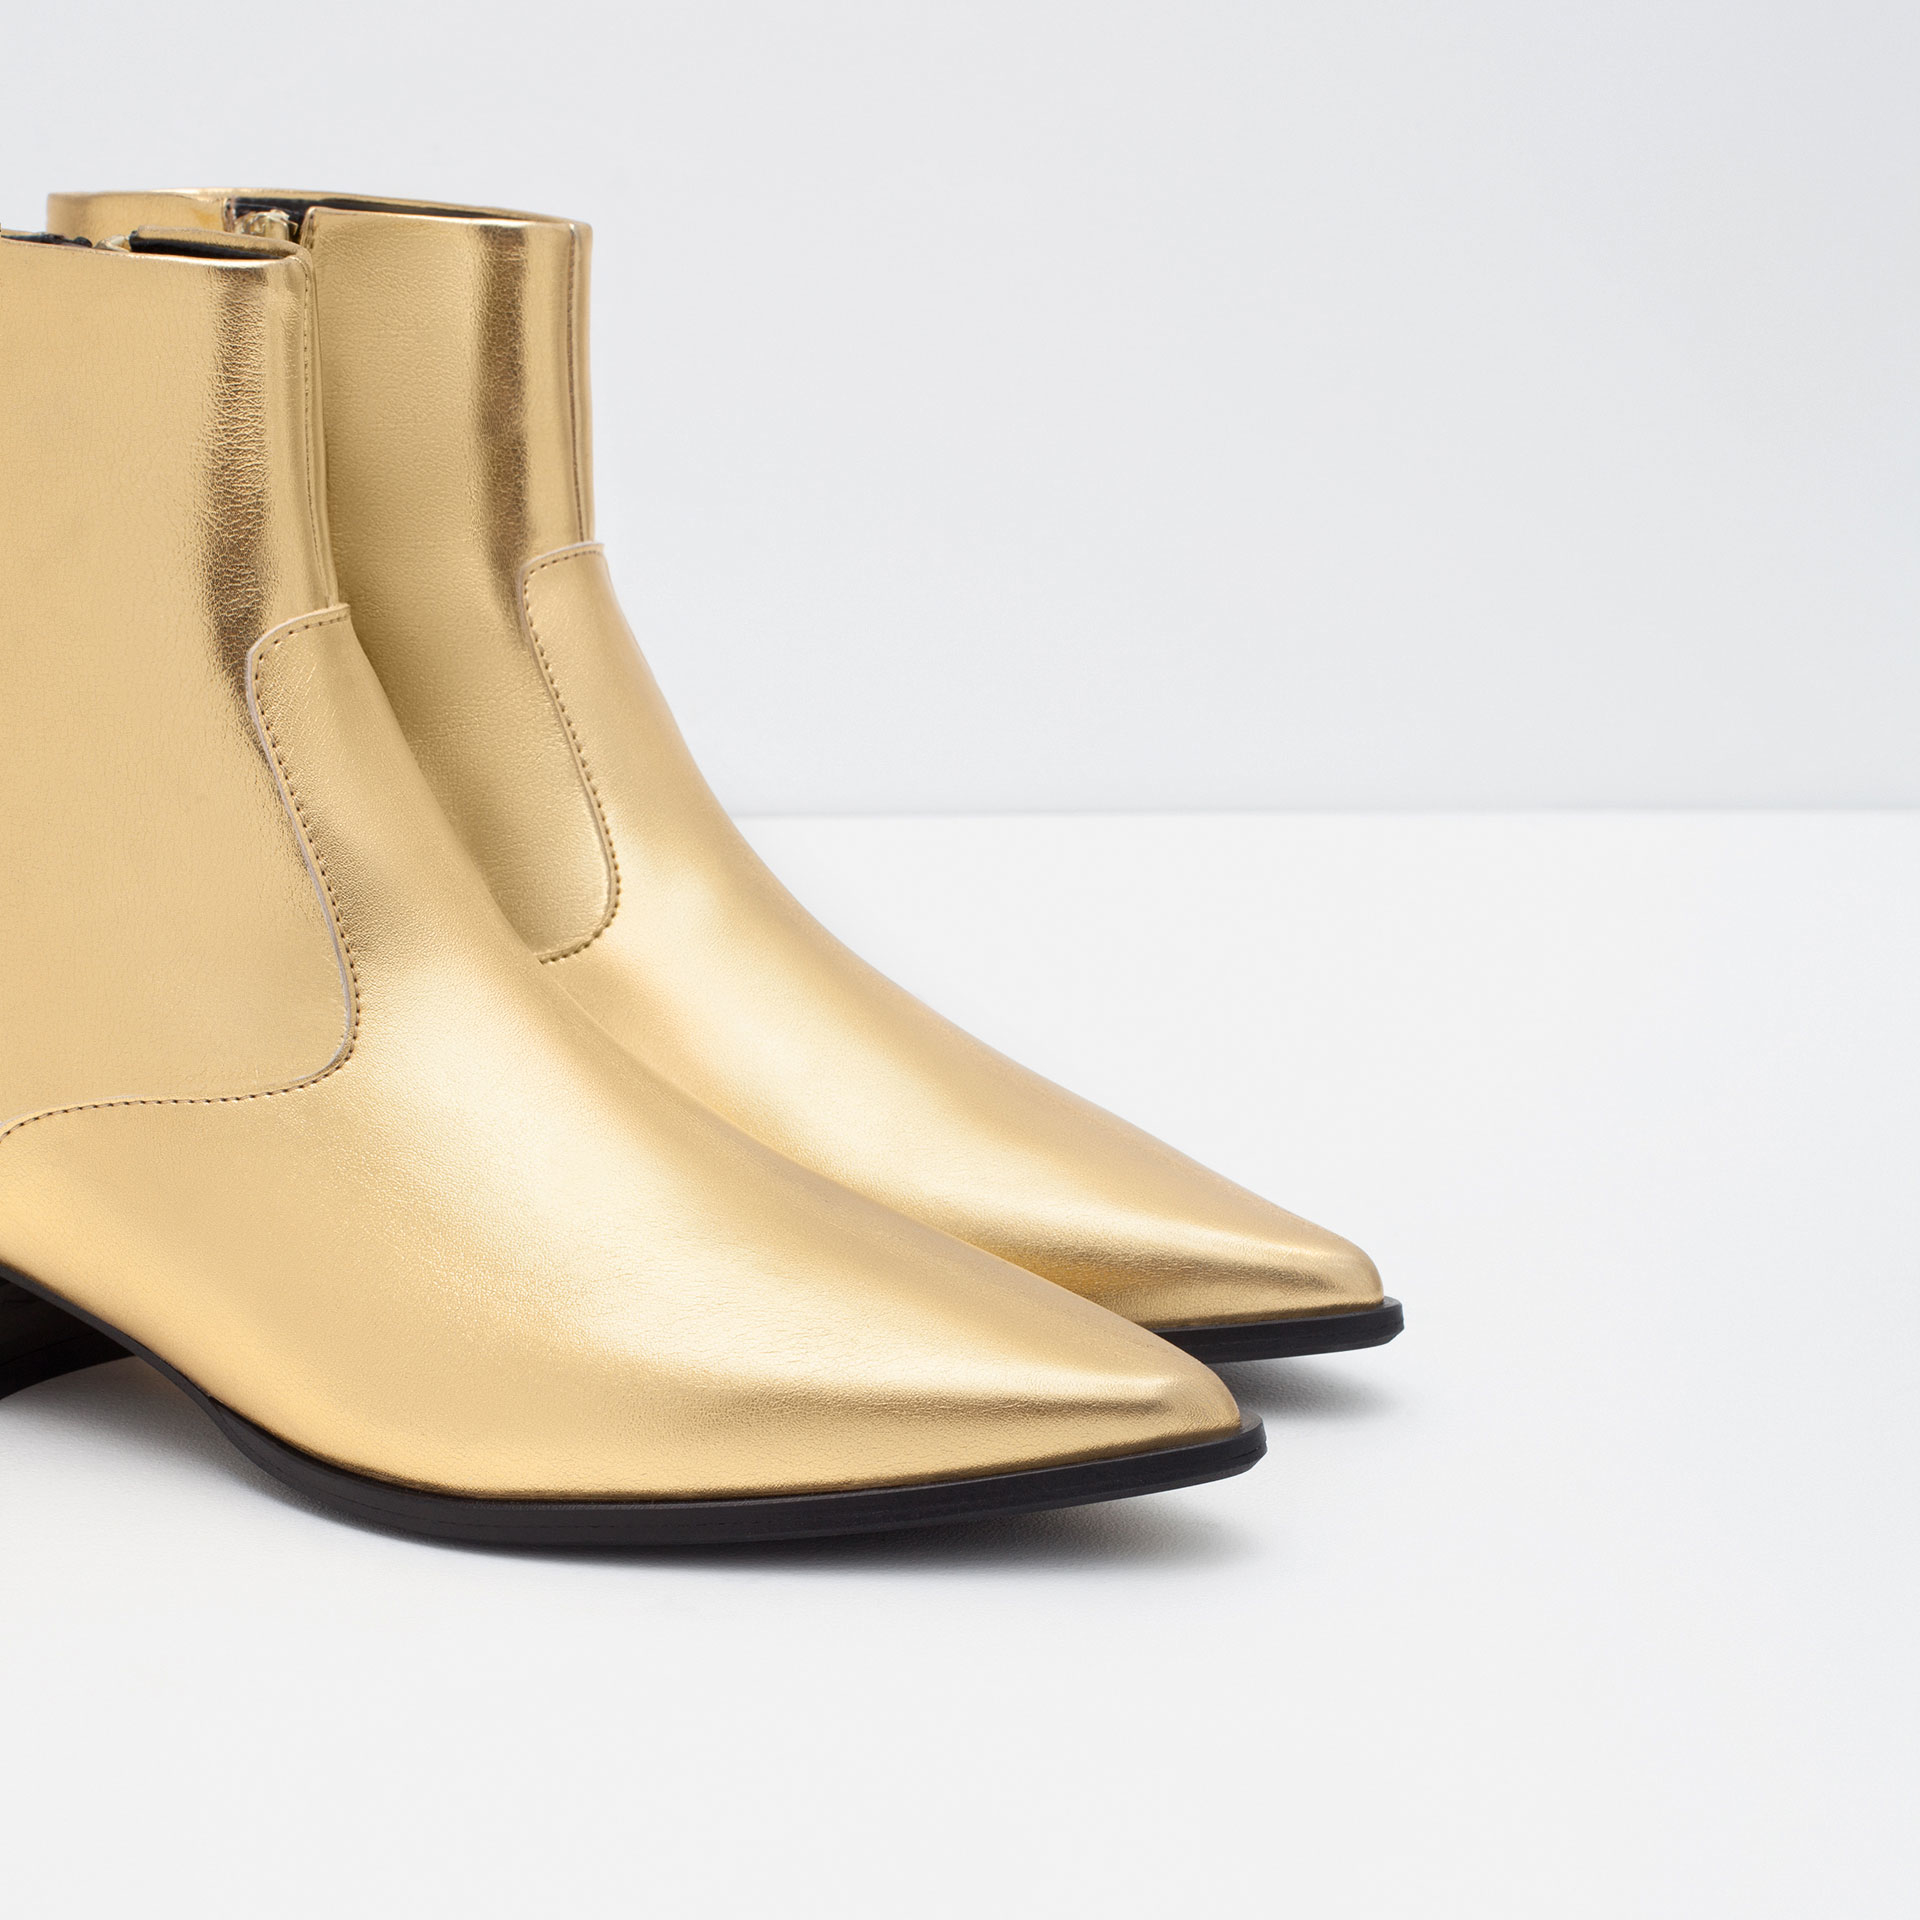 Zara Gold Tone Flat Ankle Boots in Metallic | Lyst